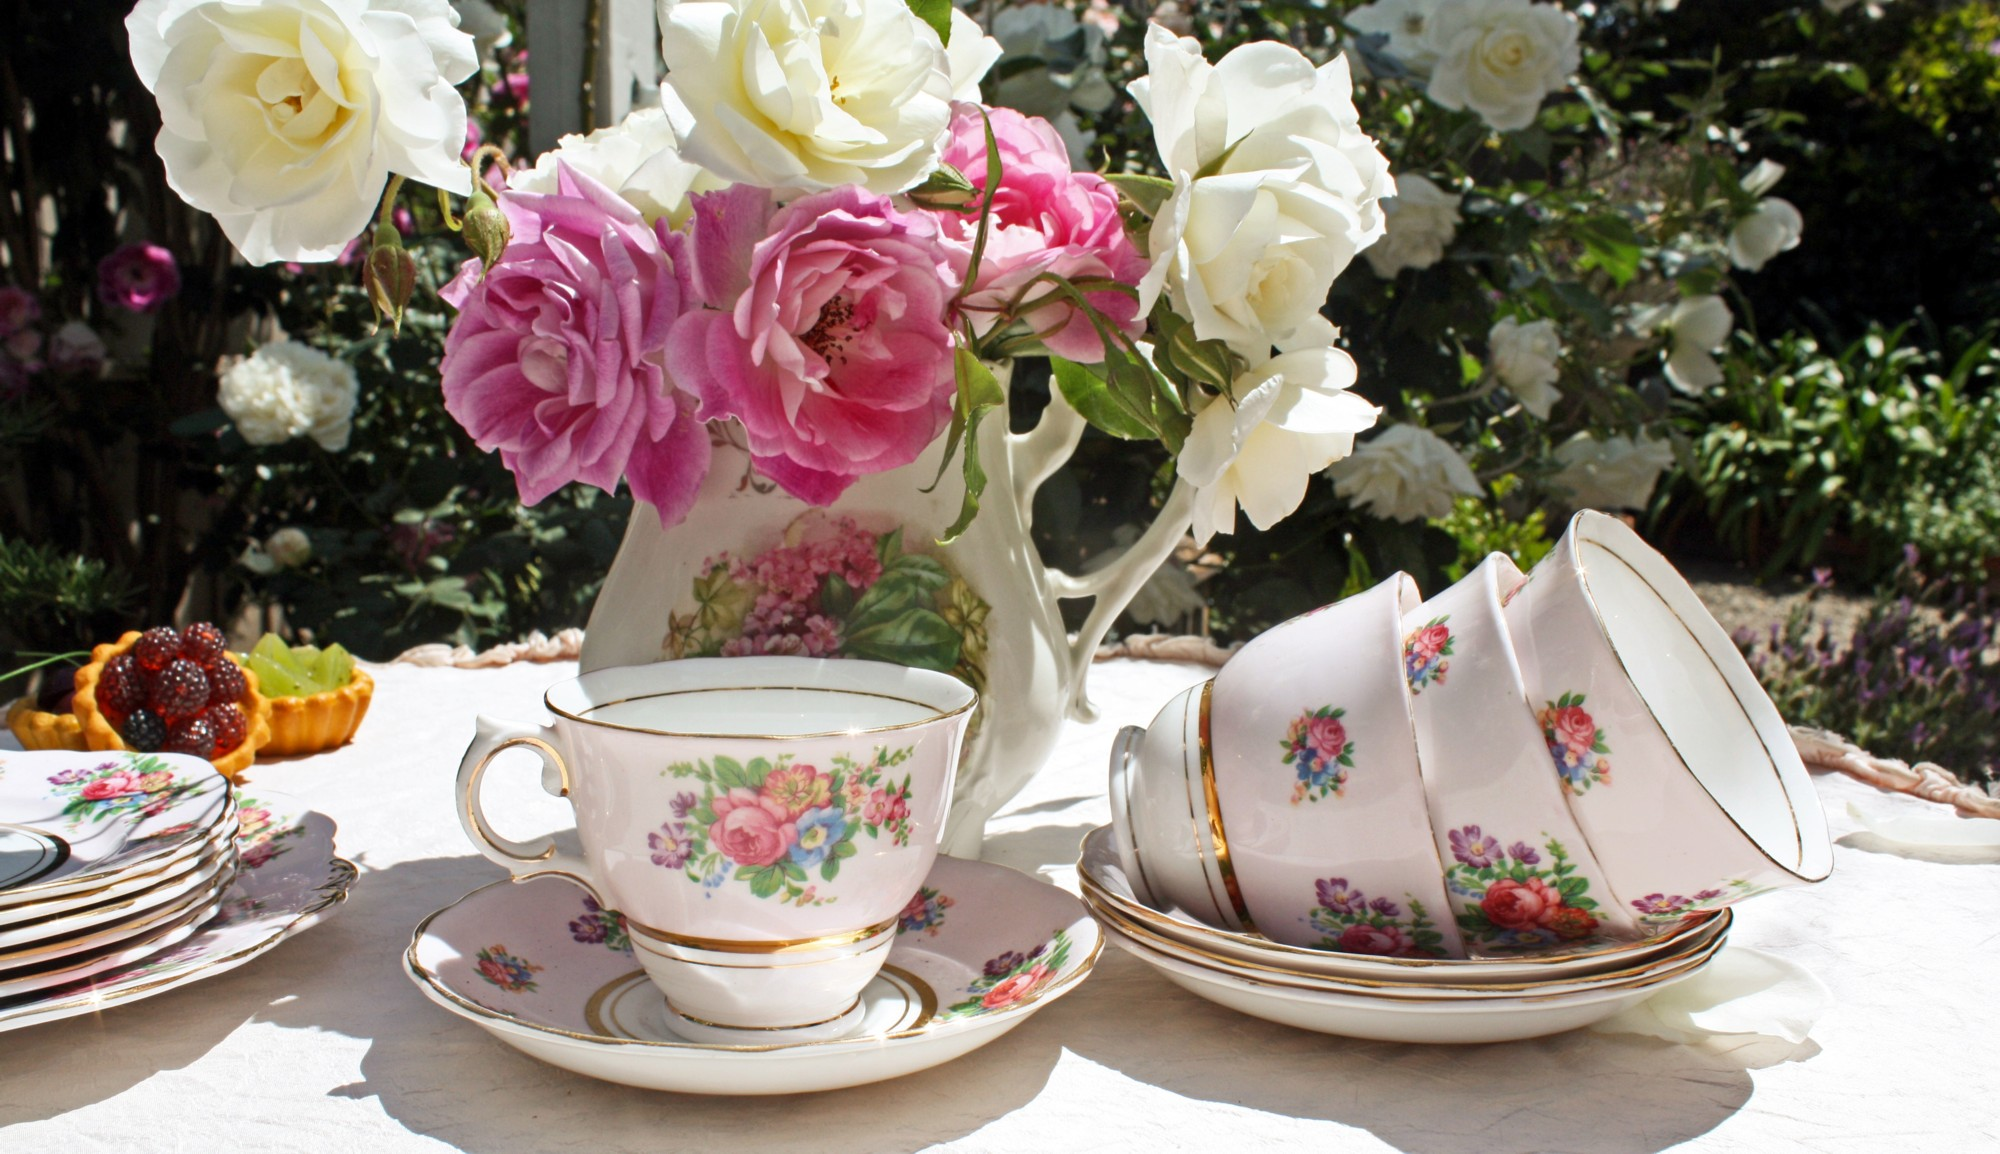 Set your table with vintage china, delicate sandwiches, and sweet ...